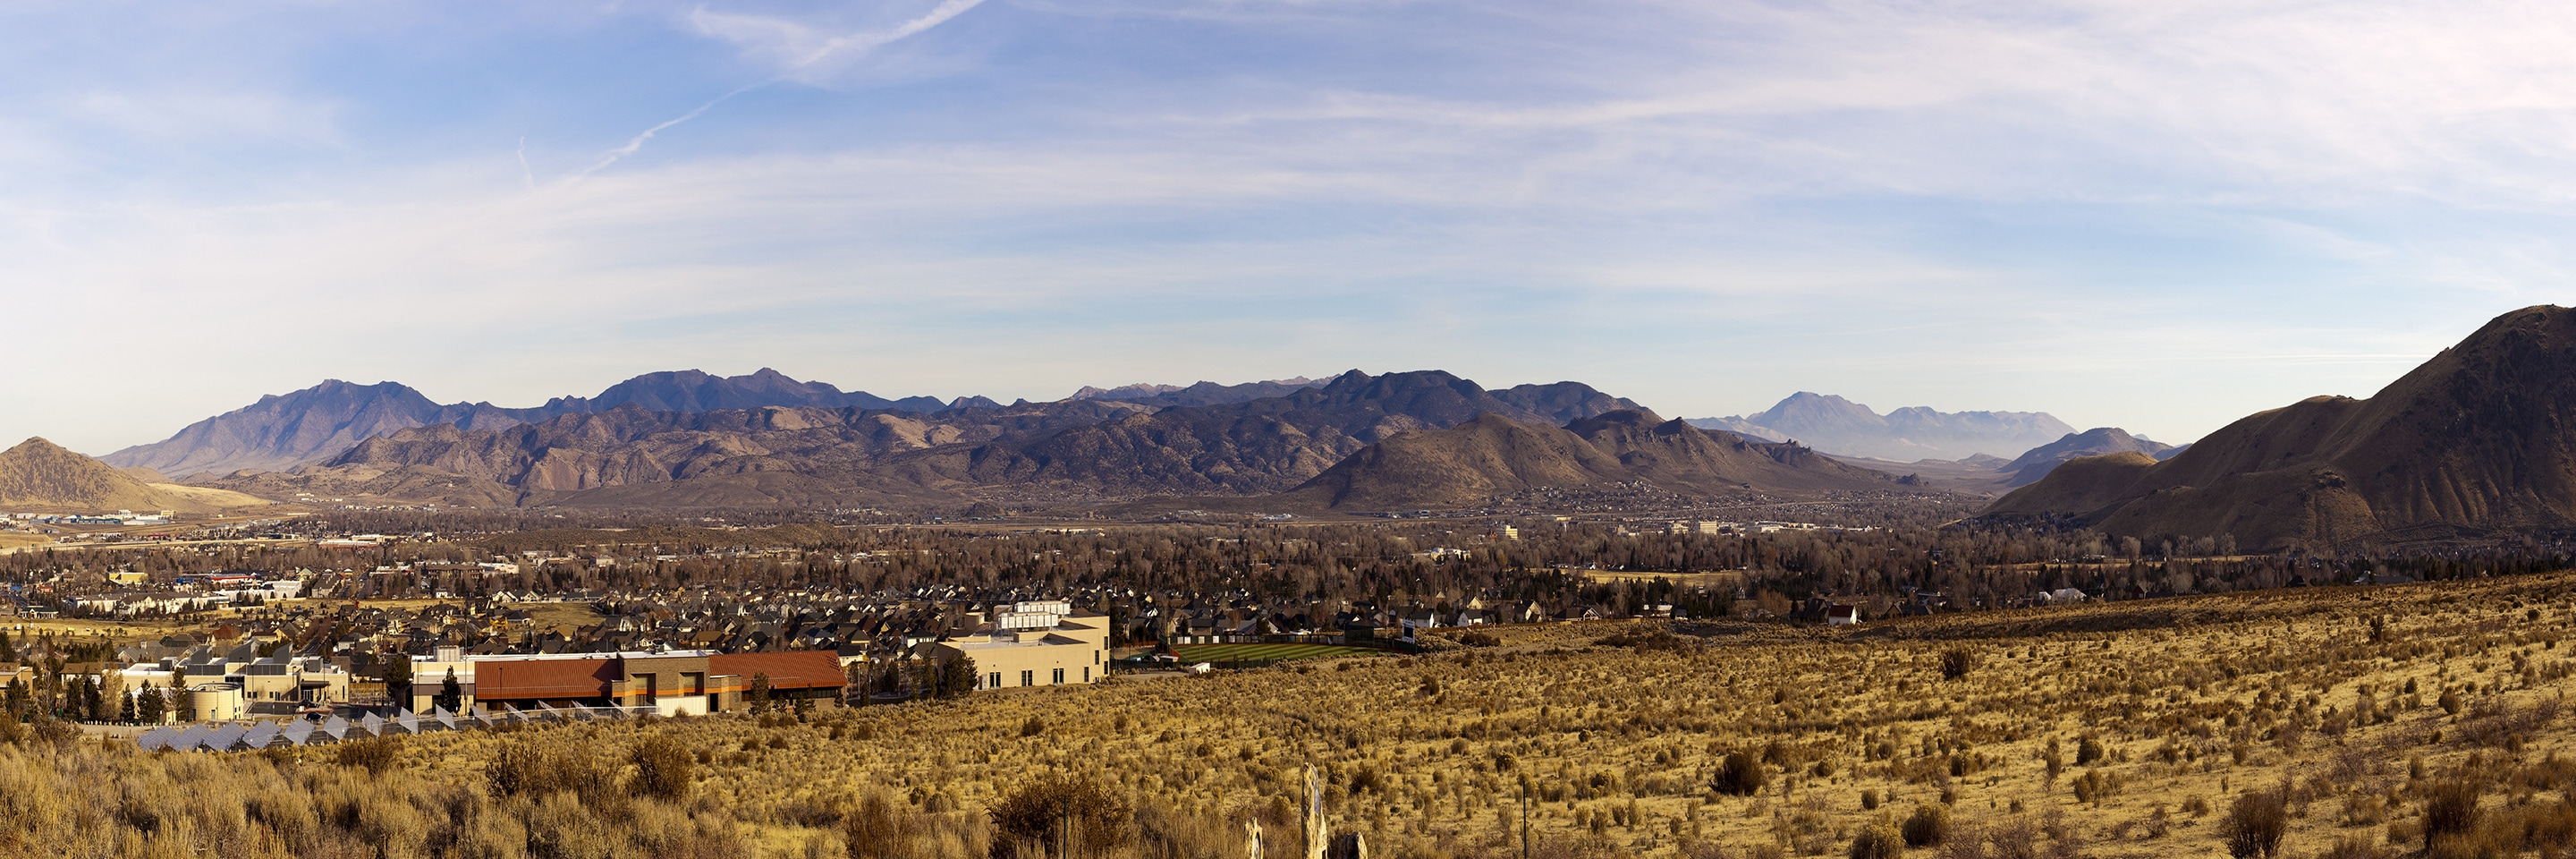 Hotels in Carson City